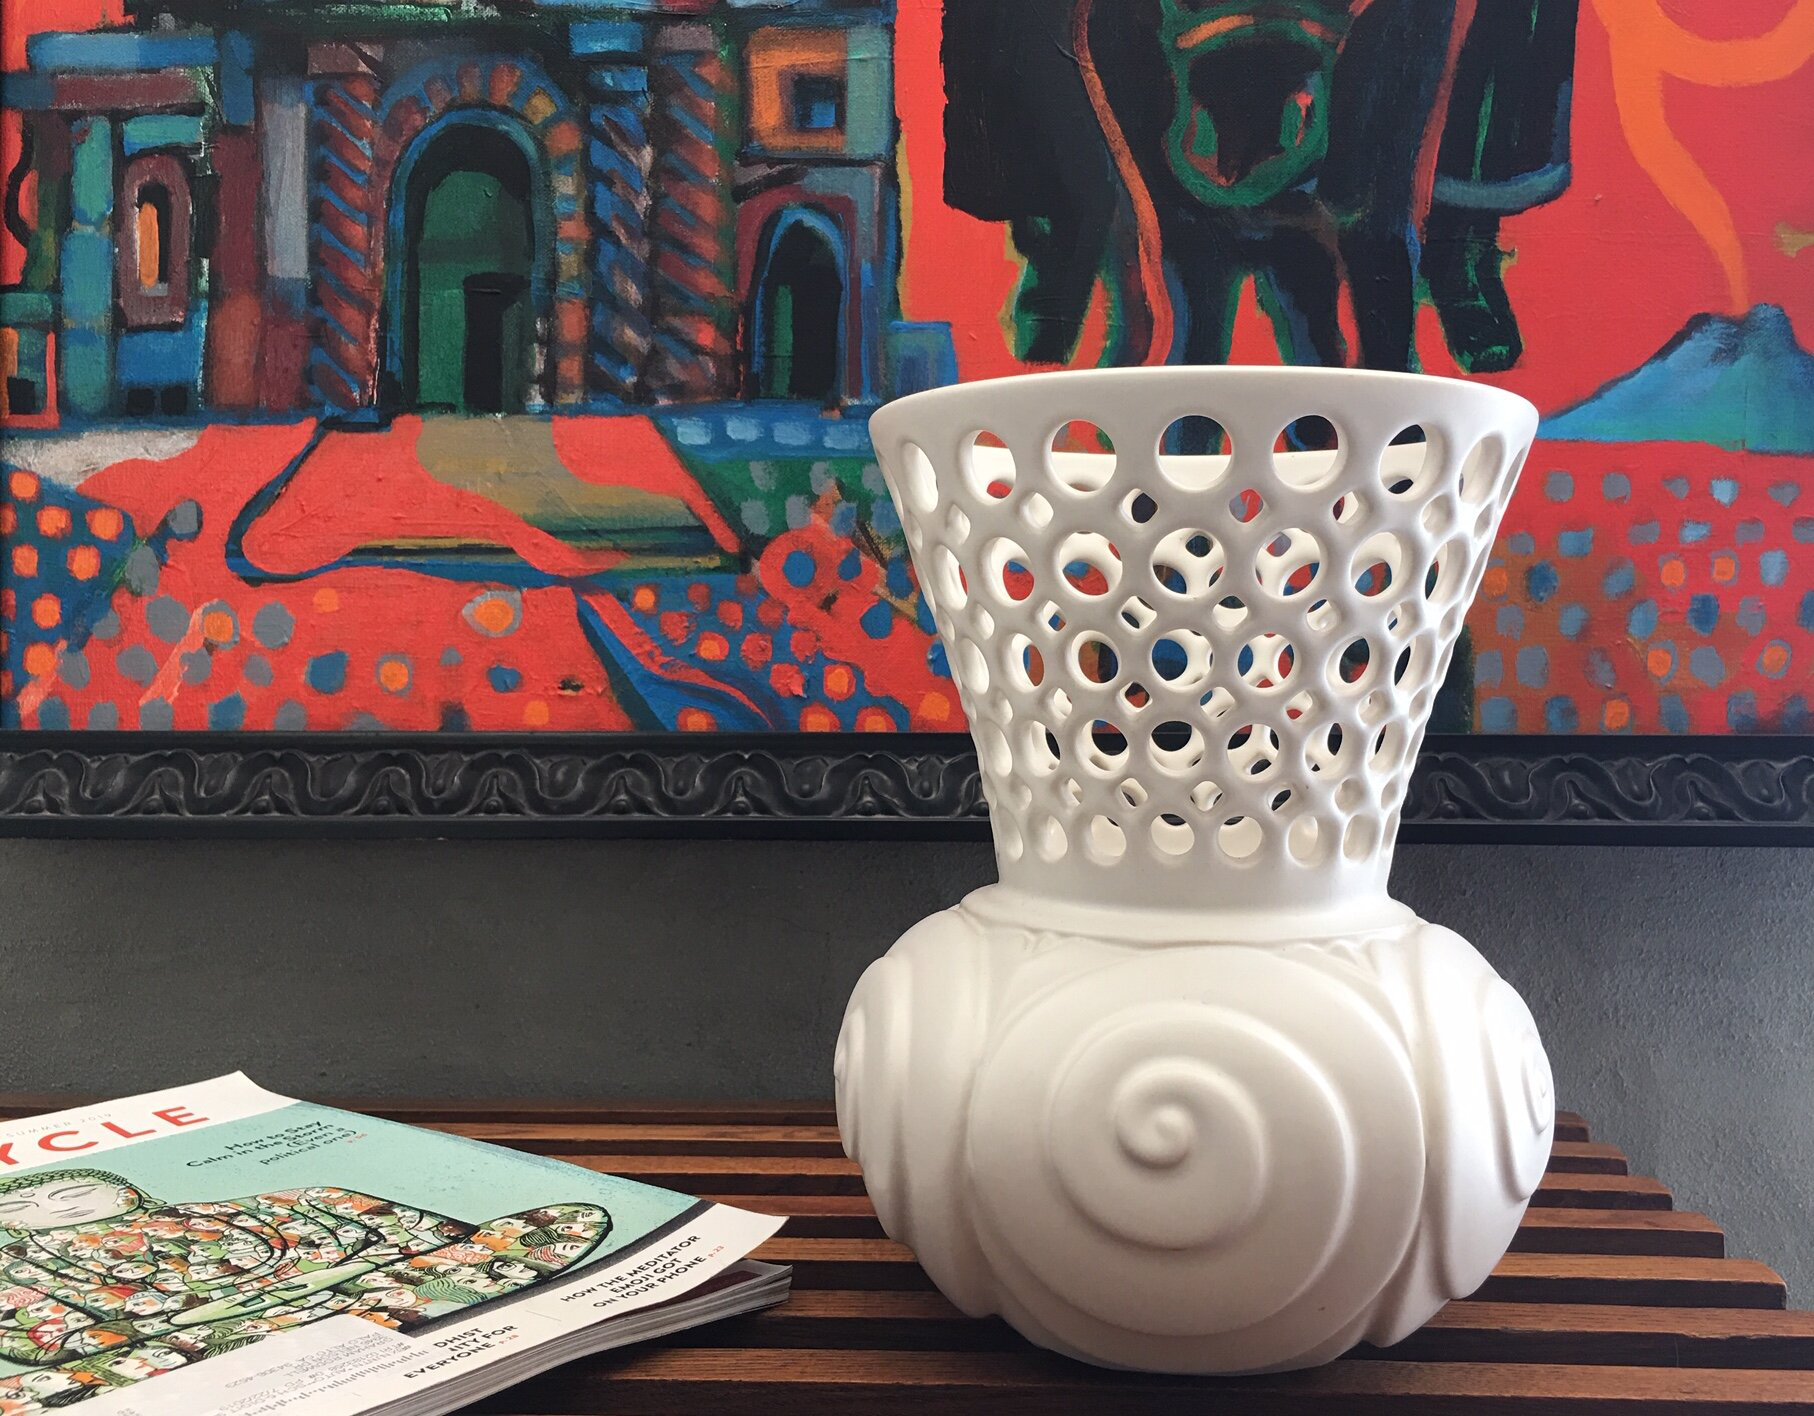 Lynne Meade's intricate ceramics include pierced vases and bowls, stylishly carved vessels, and unique artisan-made tiles.